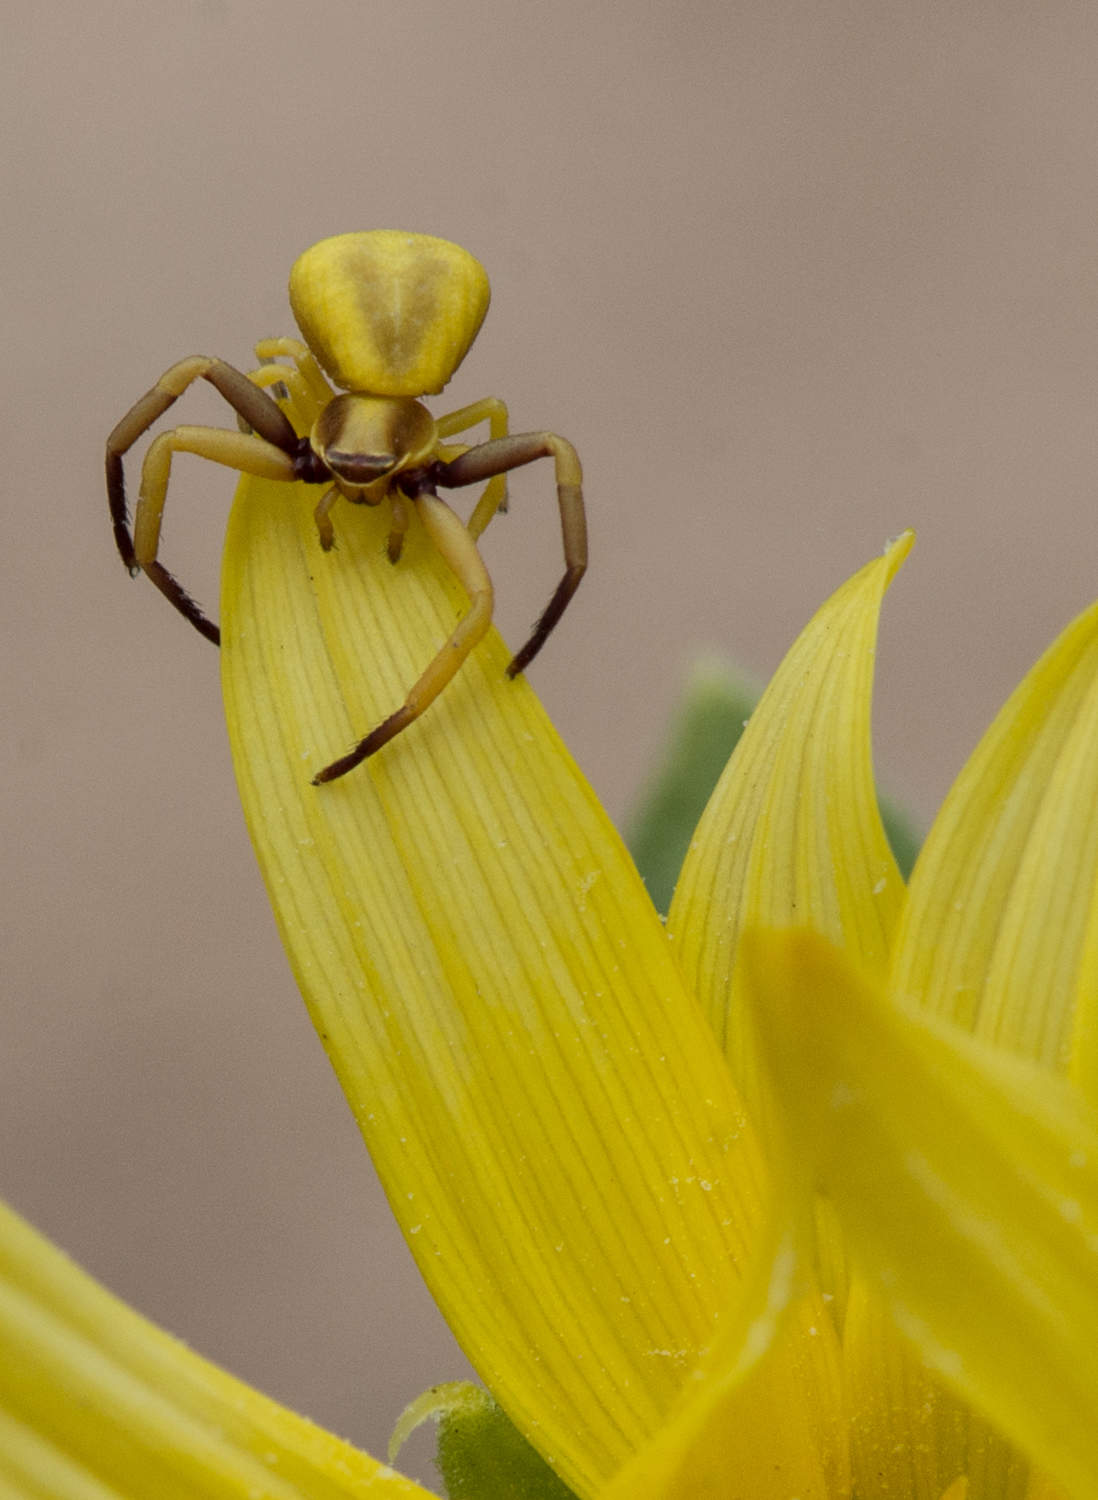 Crab Spider  Setting: 105mm, f/14.0, 1/160s, ISO400  Condition: Sunny in shade, 6-21-14 13:55